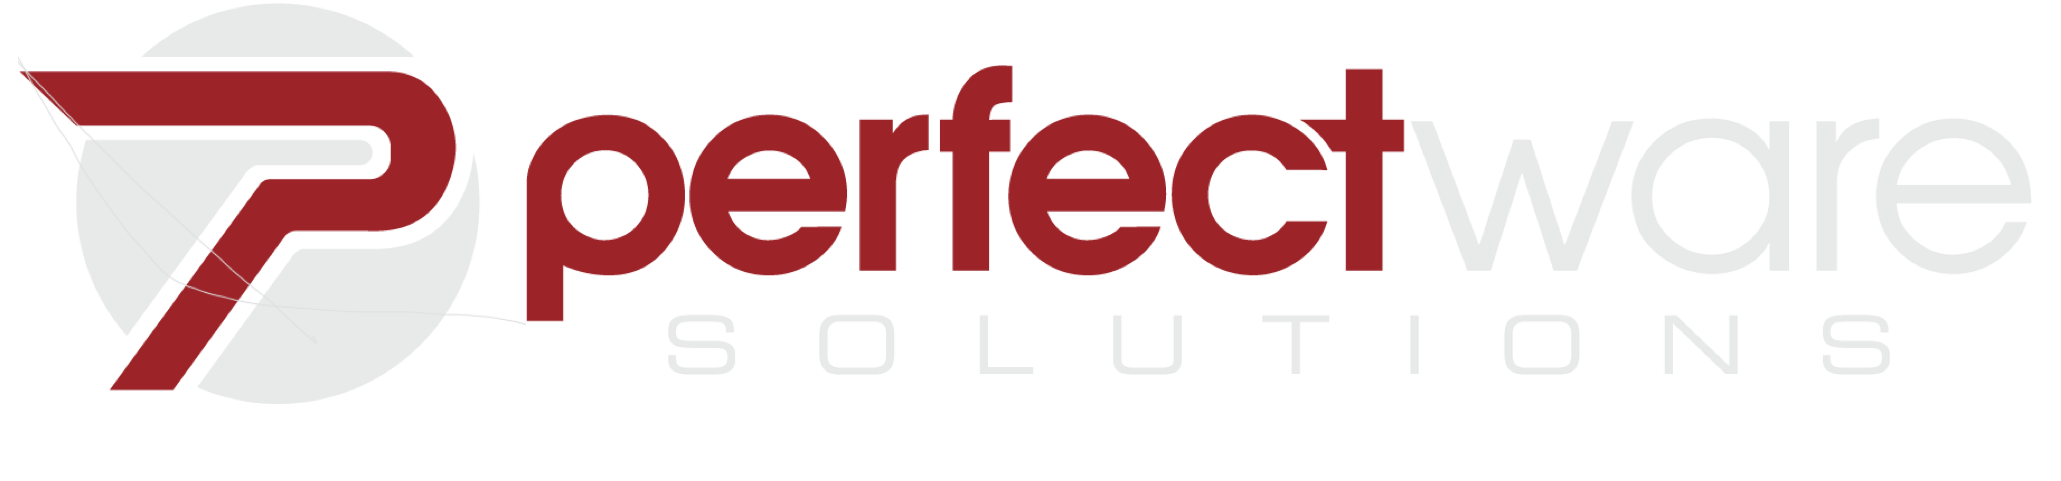 Perfectware Solutions - HVAC Service Management Software